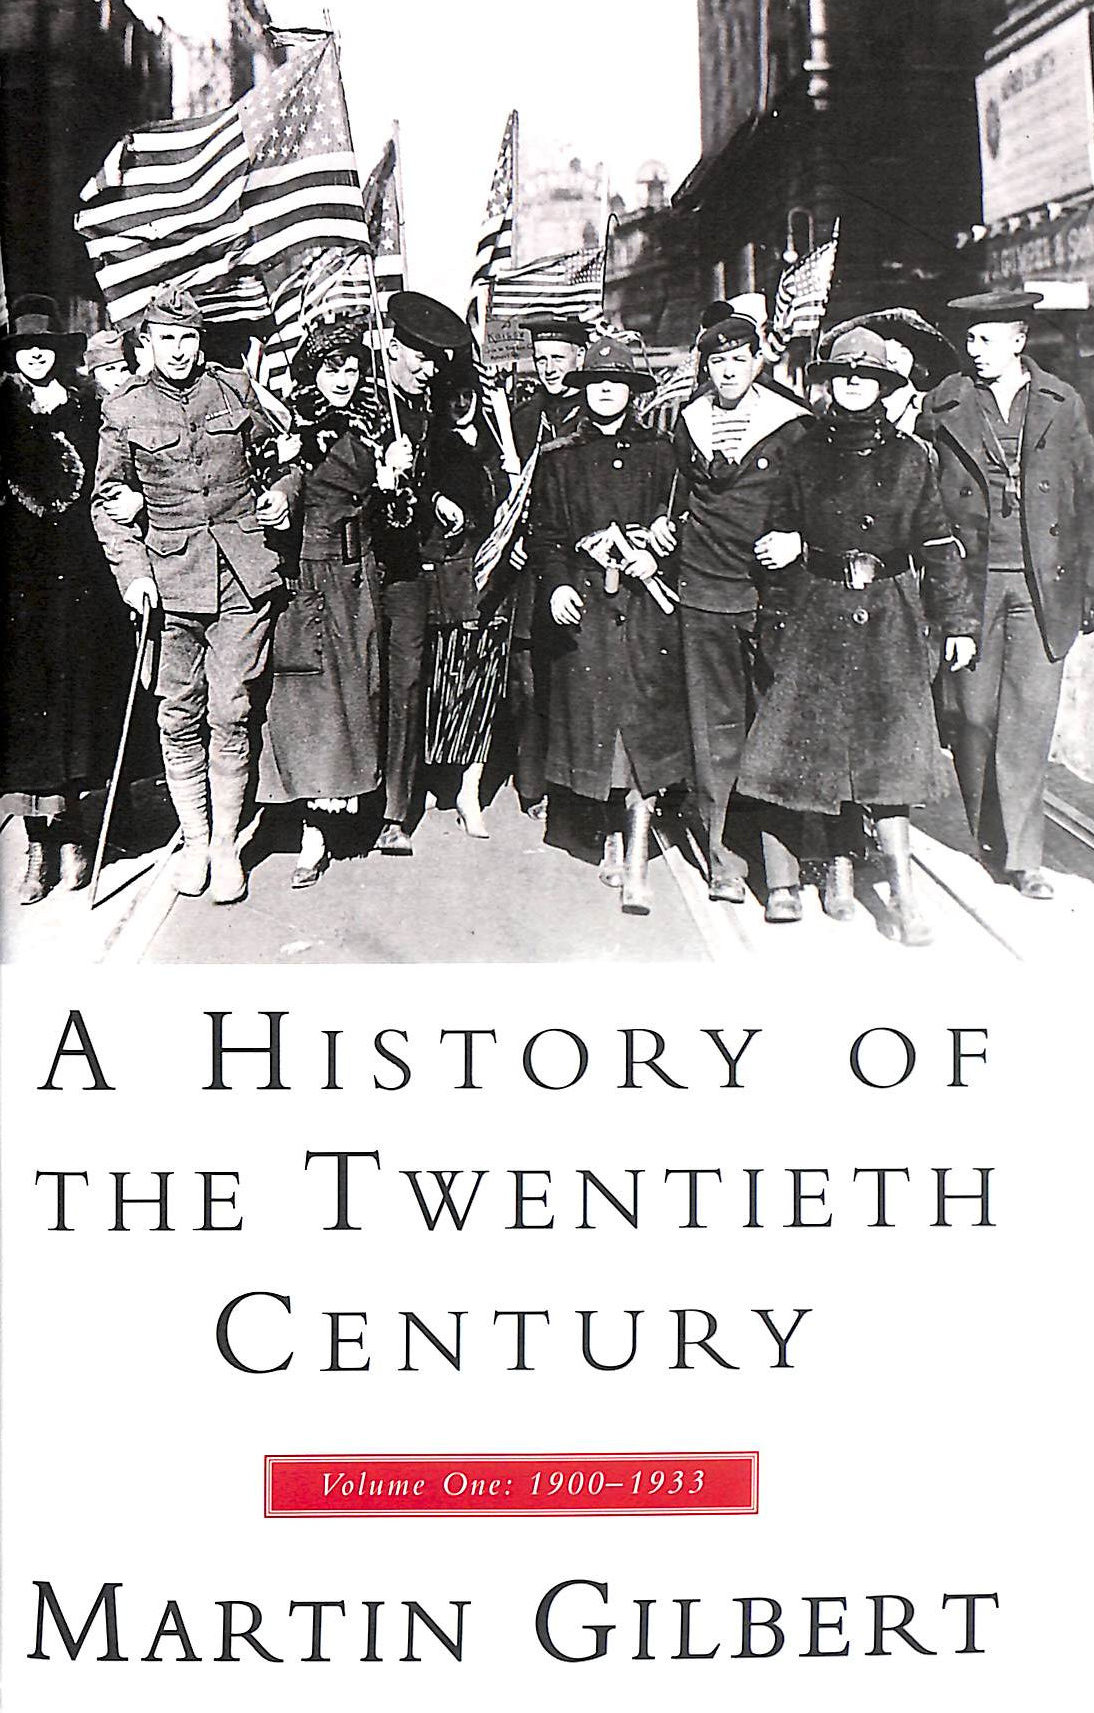 Image for A History of the 20th Century: 1900-1933 Vol 1 (HISTORY OF THE TWENTIETH CENTURY)